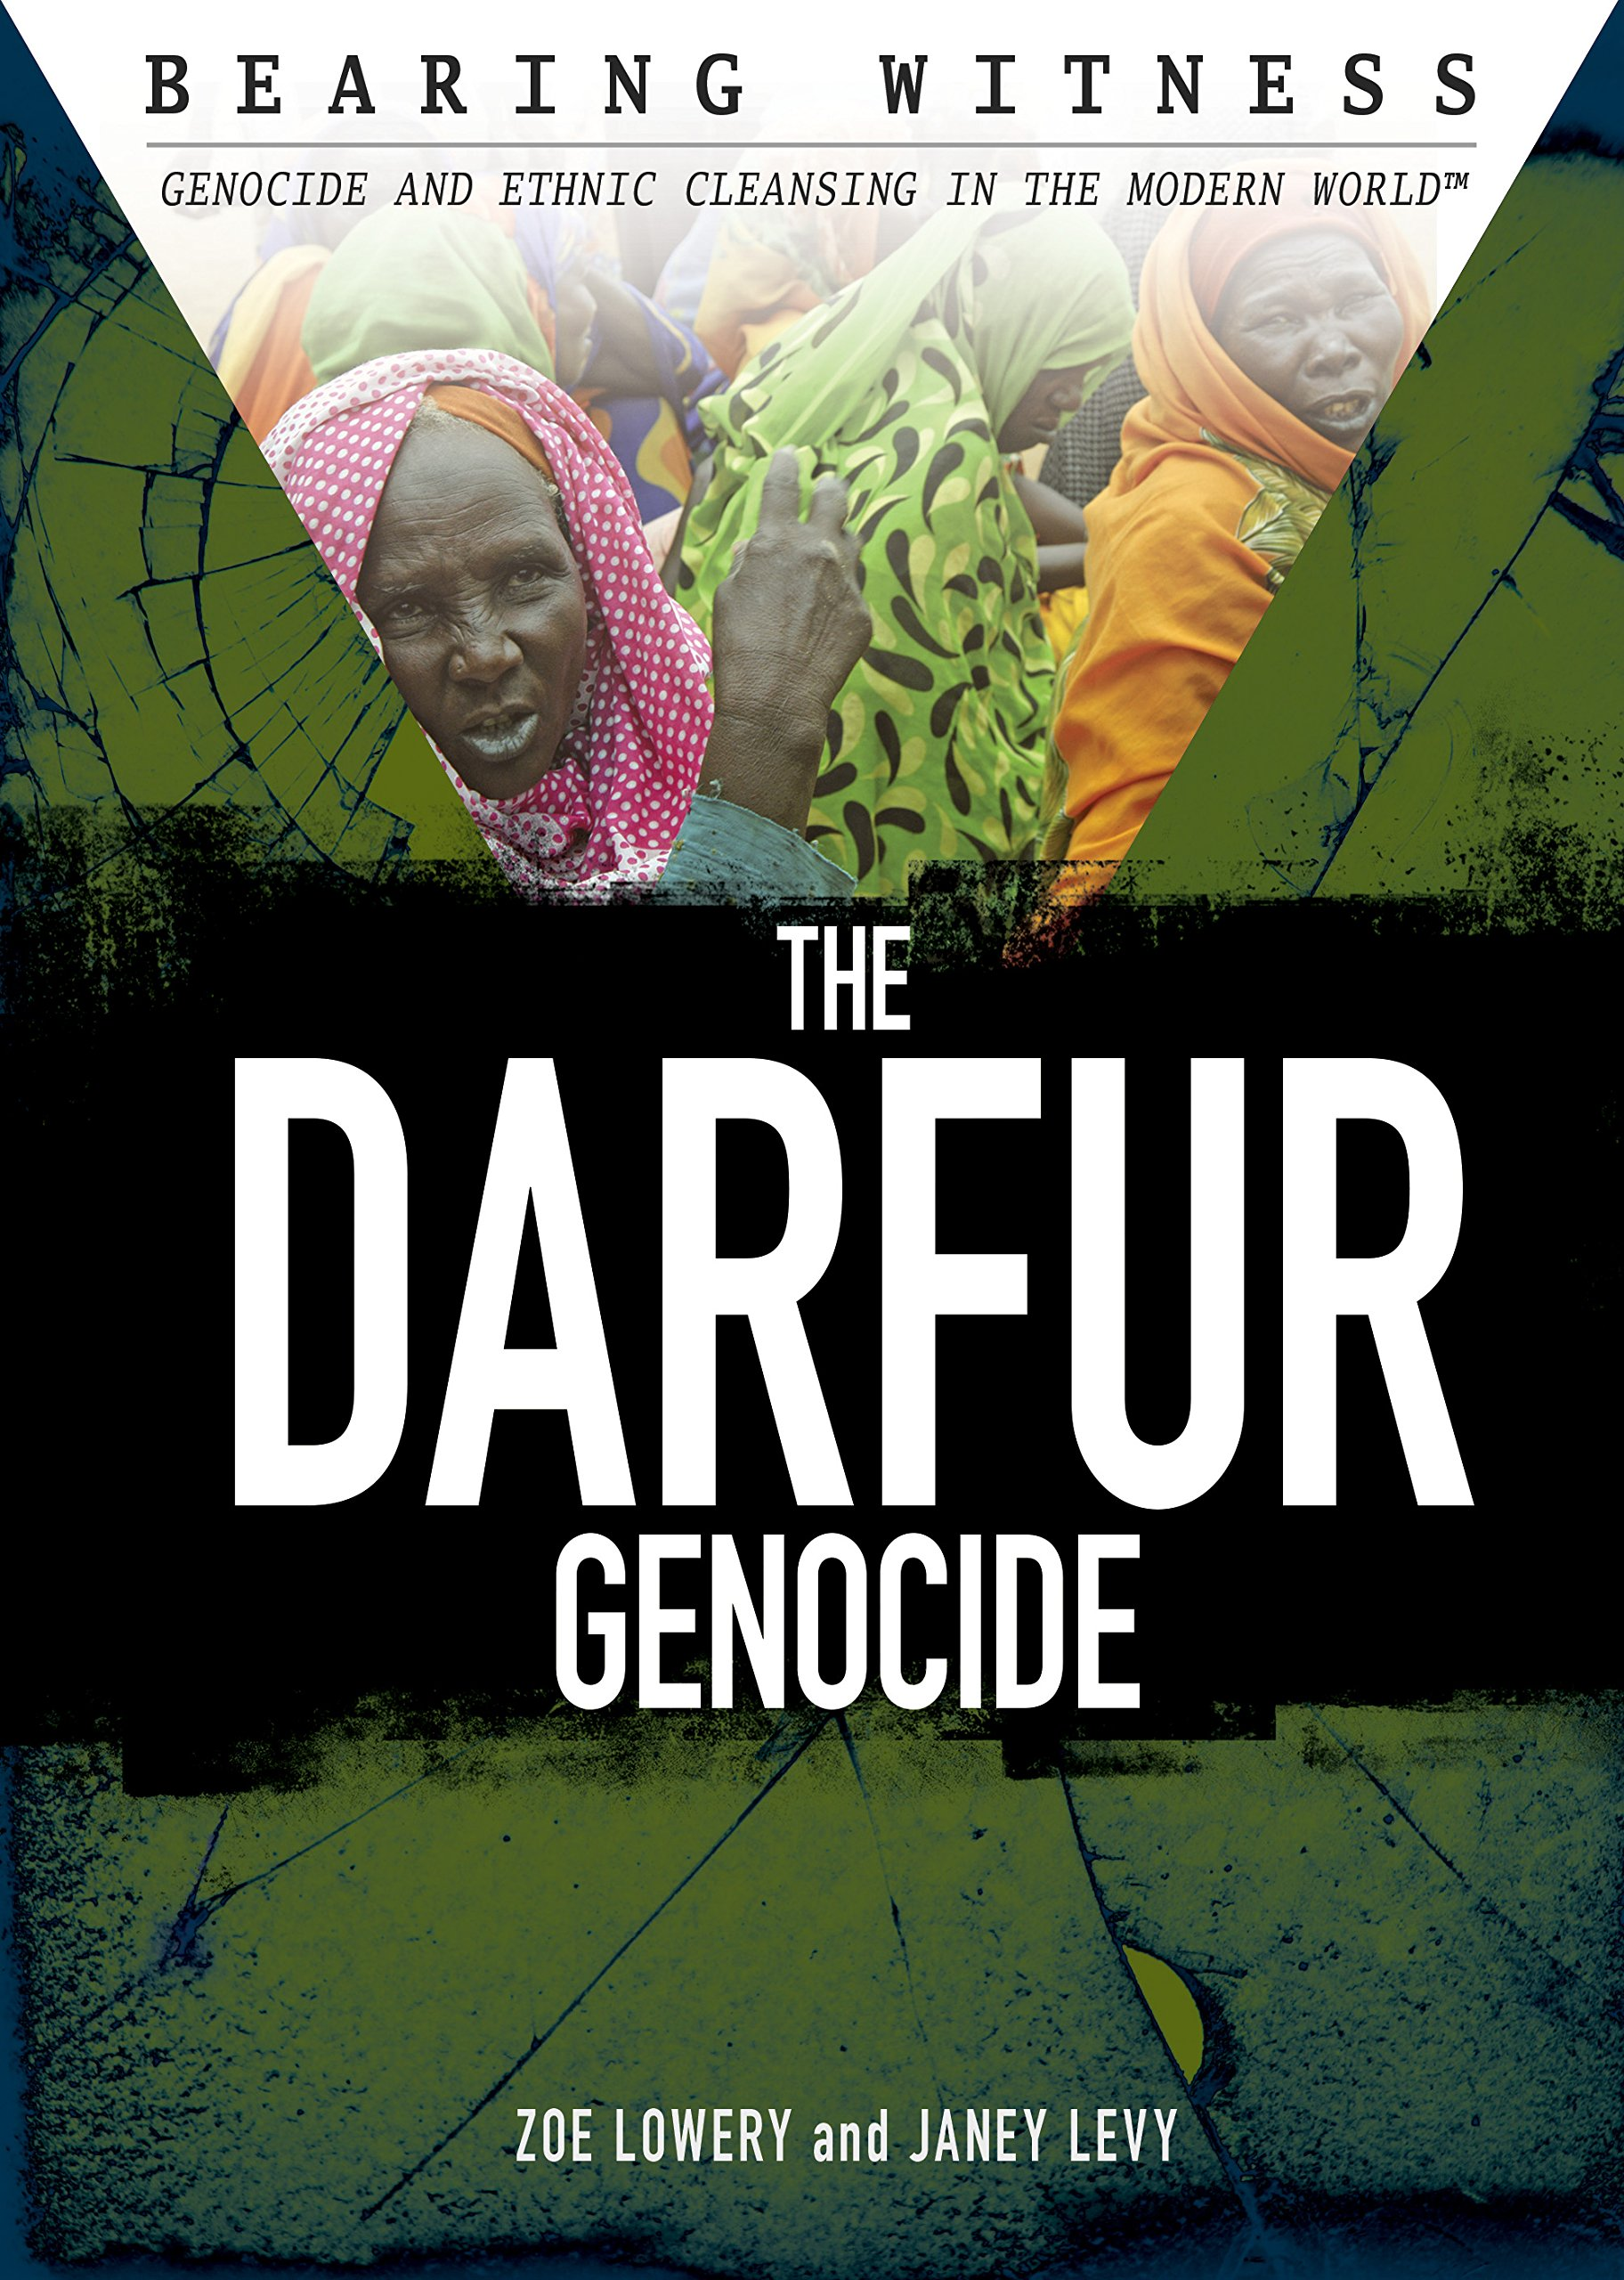 Download The Darfur Genocide (Bearing Witness: Genocide and Ethnic Cleansing in the Modern World) PDF